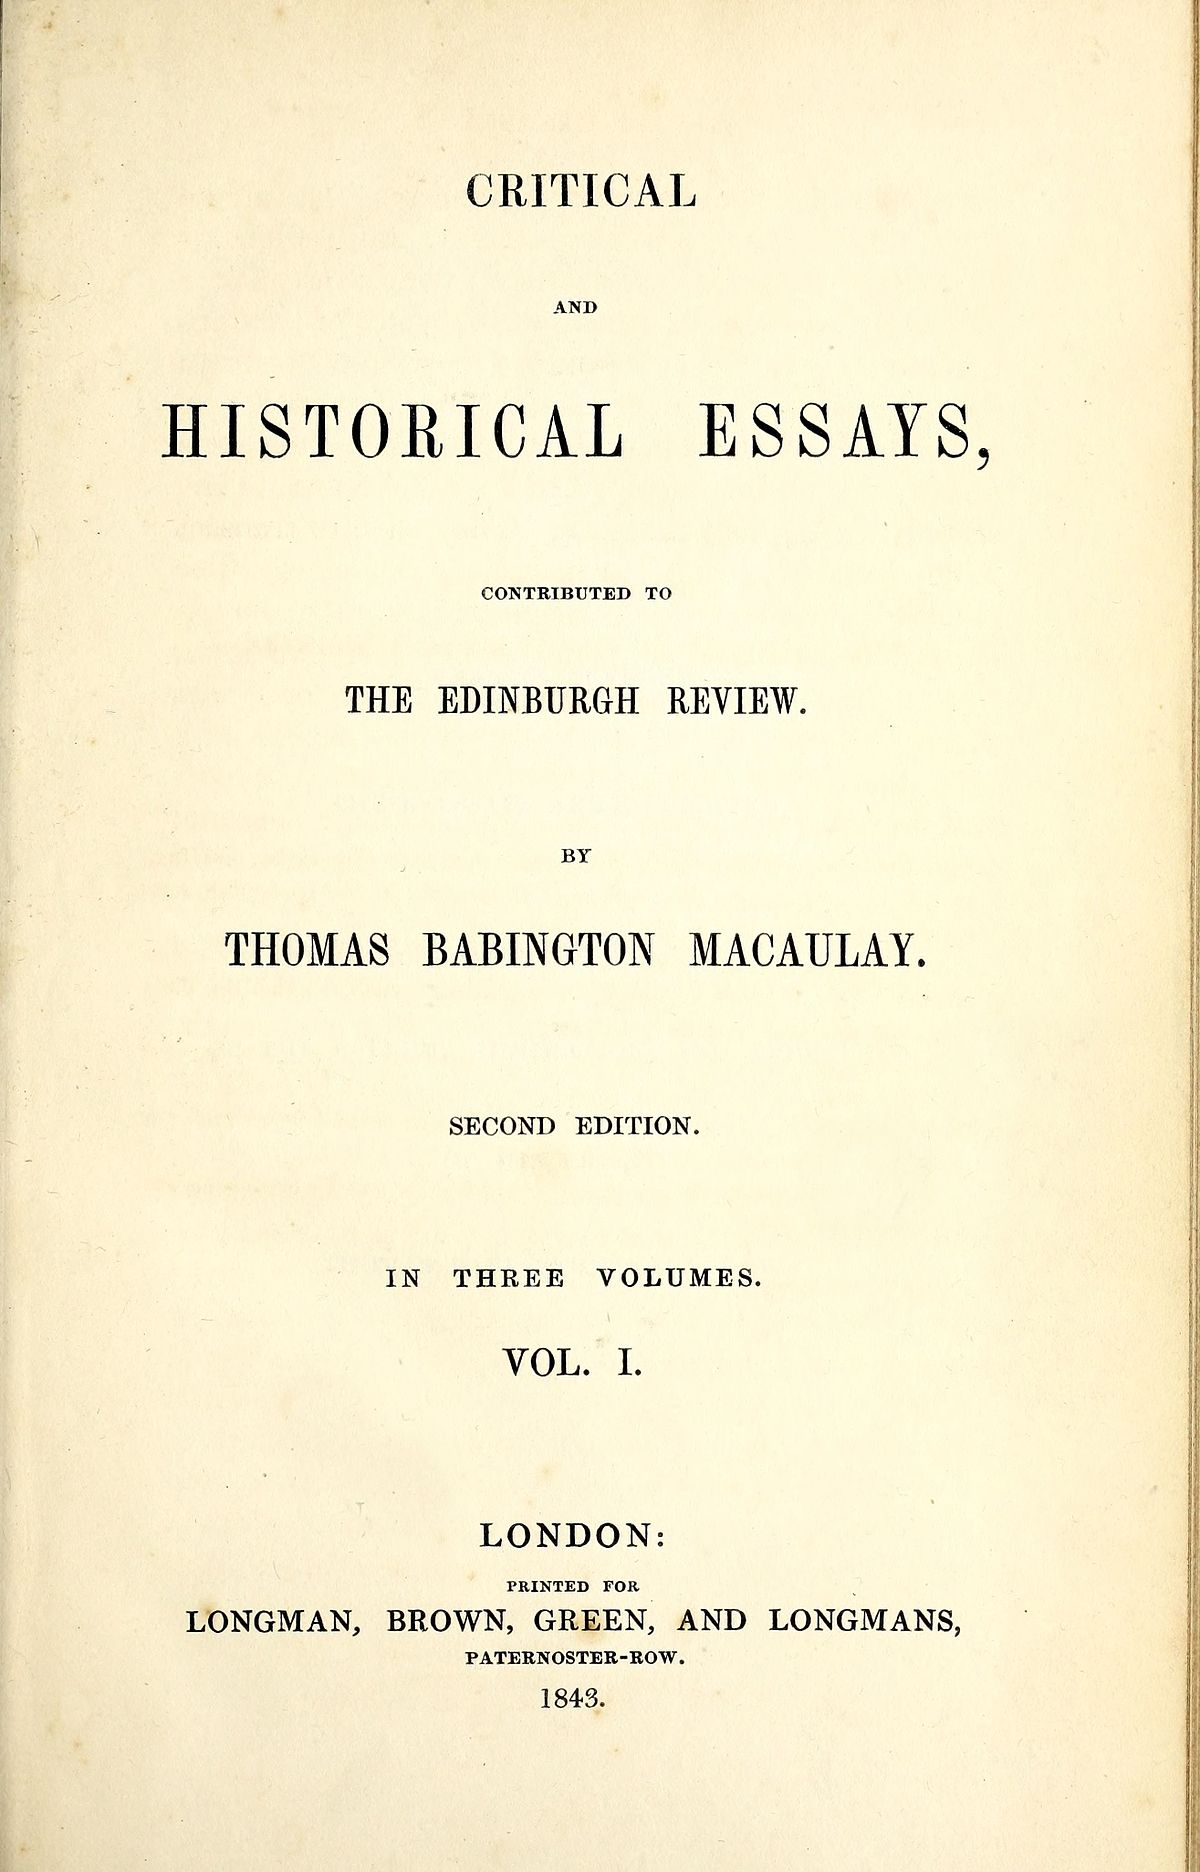 thomas babington macaulay essay on milton 91 121 113 106 thomas babington macaulay essay on milton